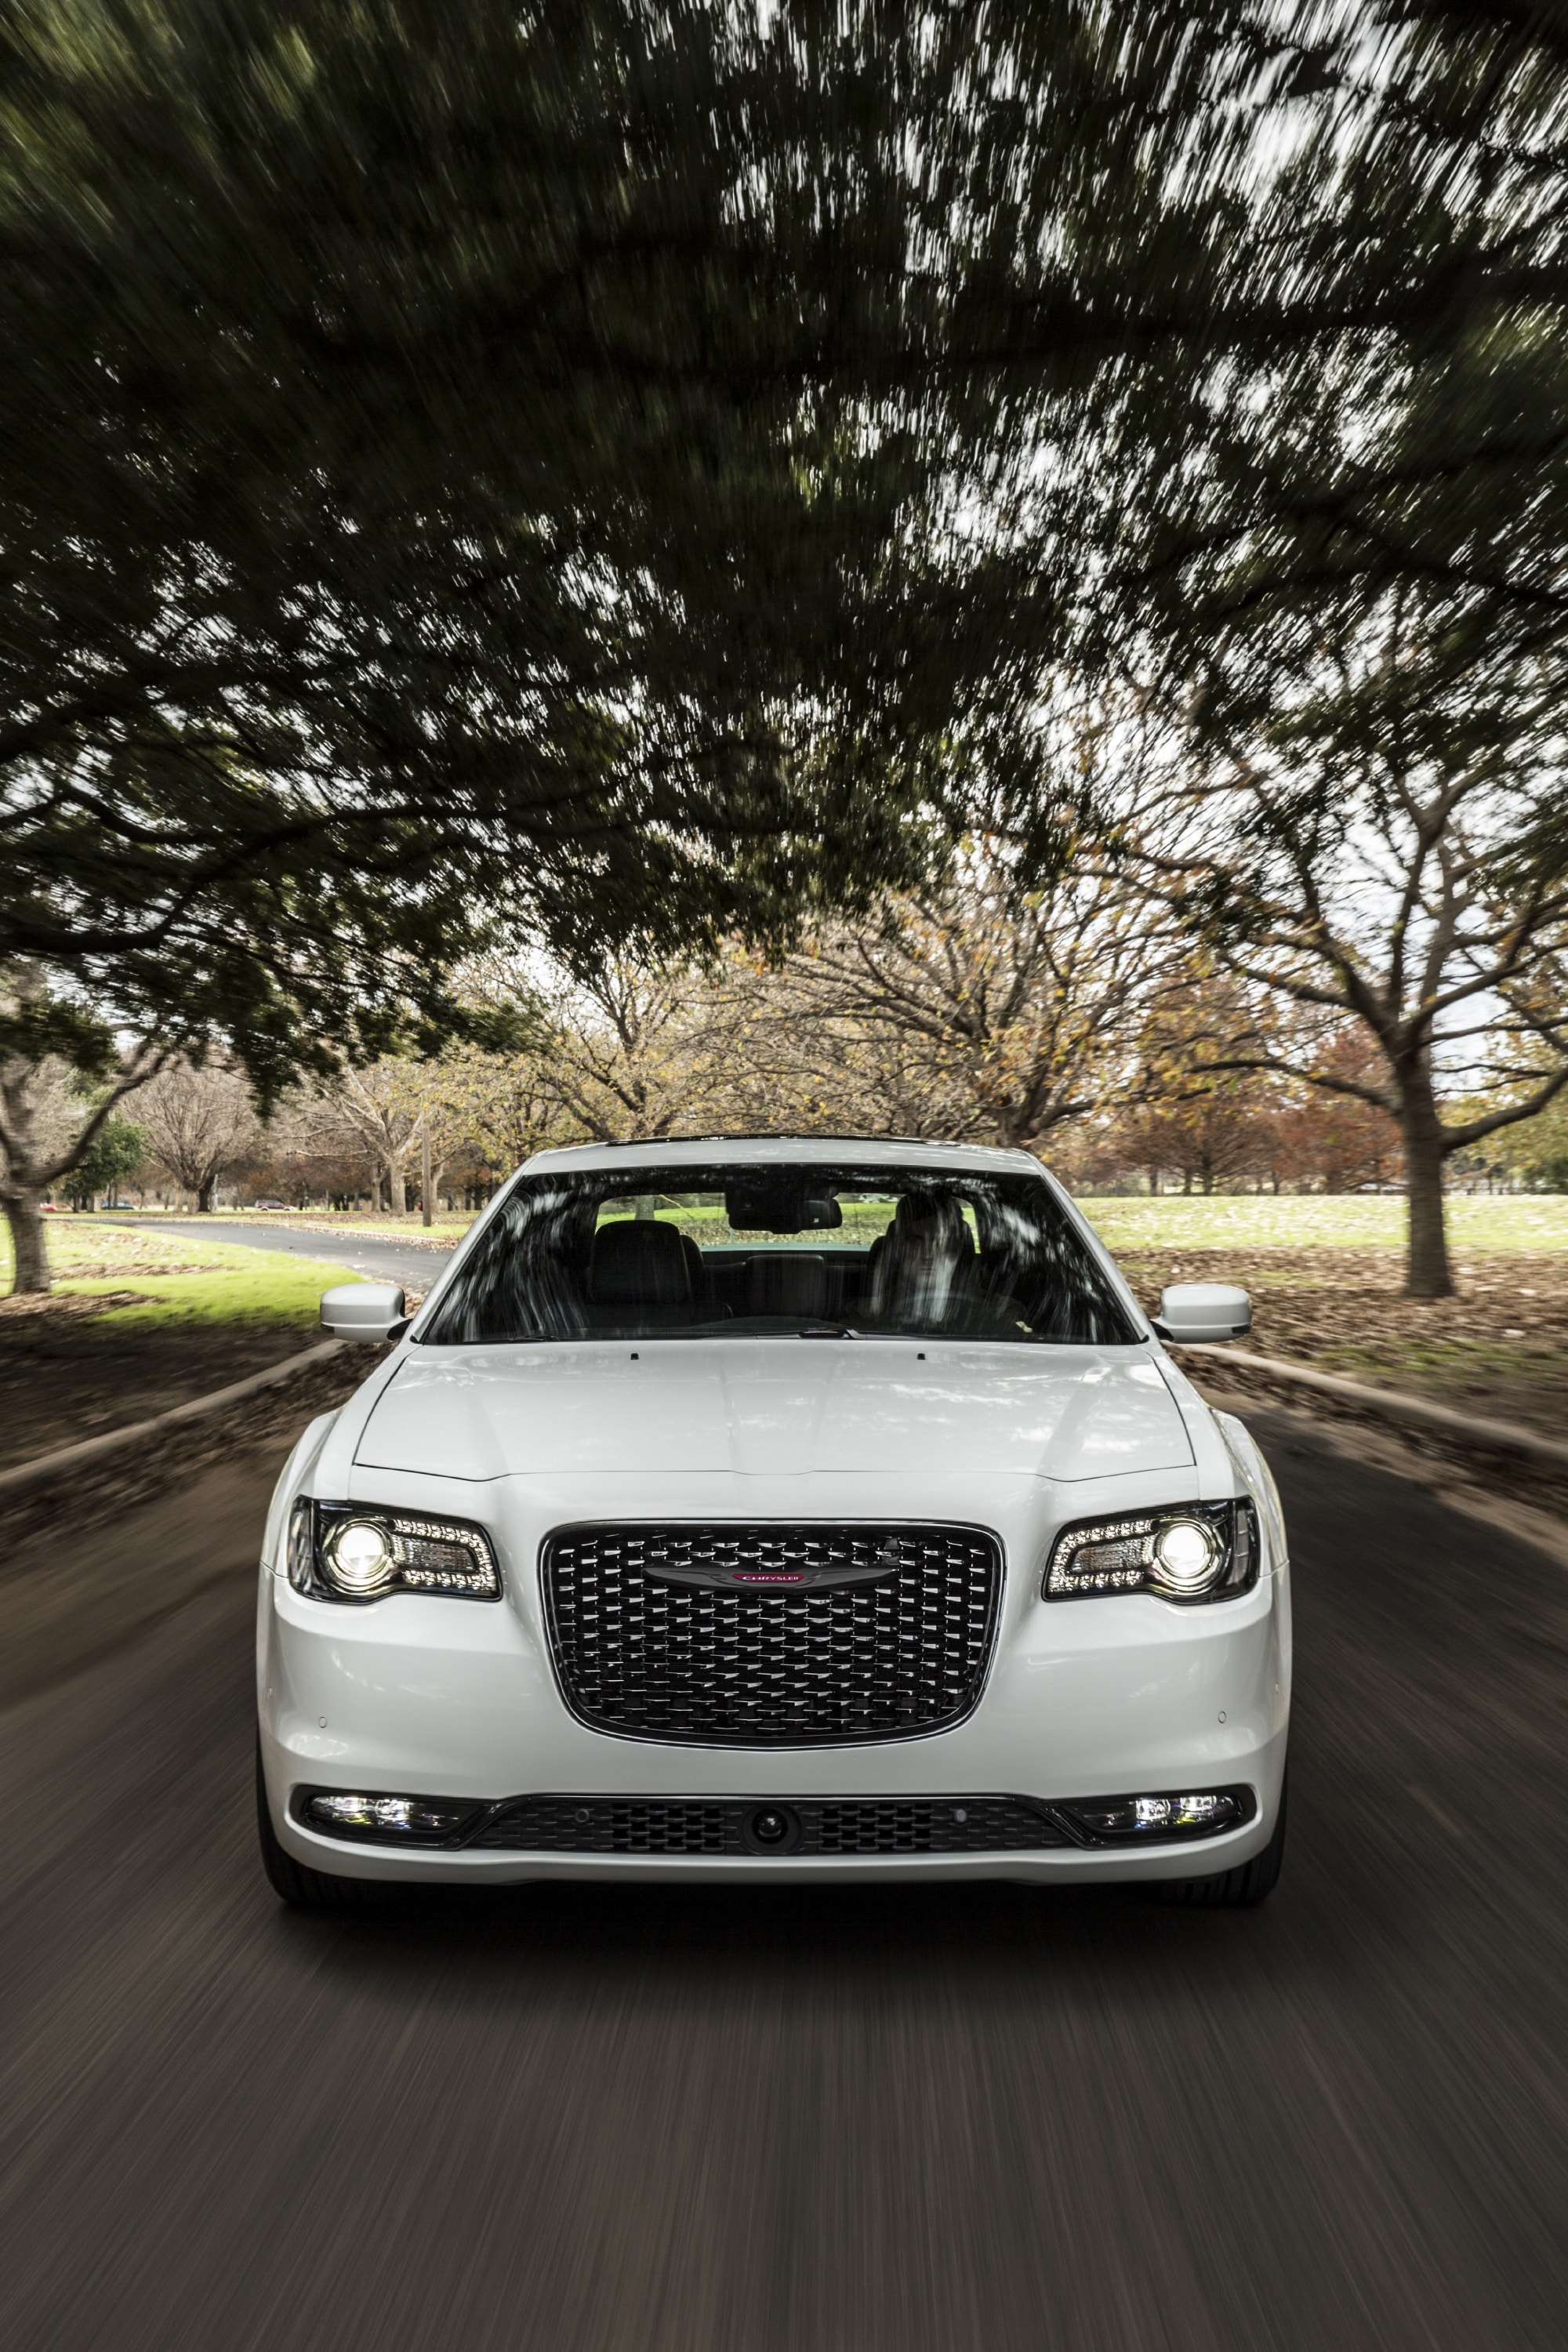 Front Grille View of Chrysler 300 in motion